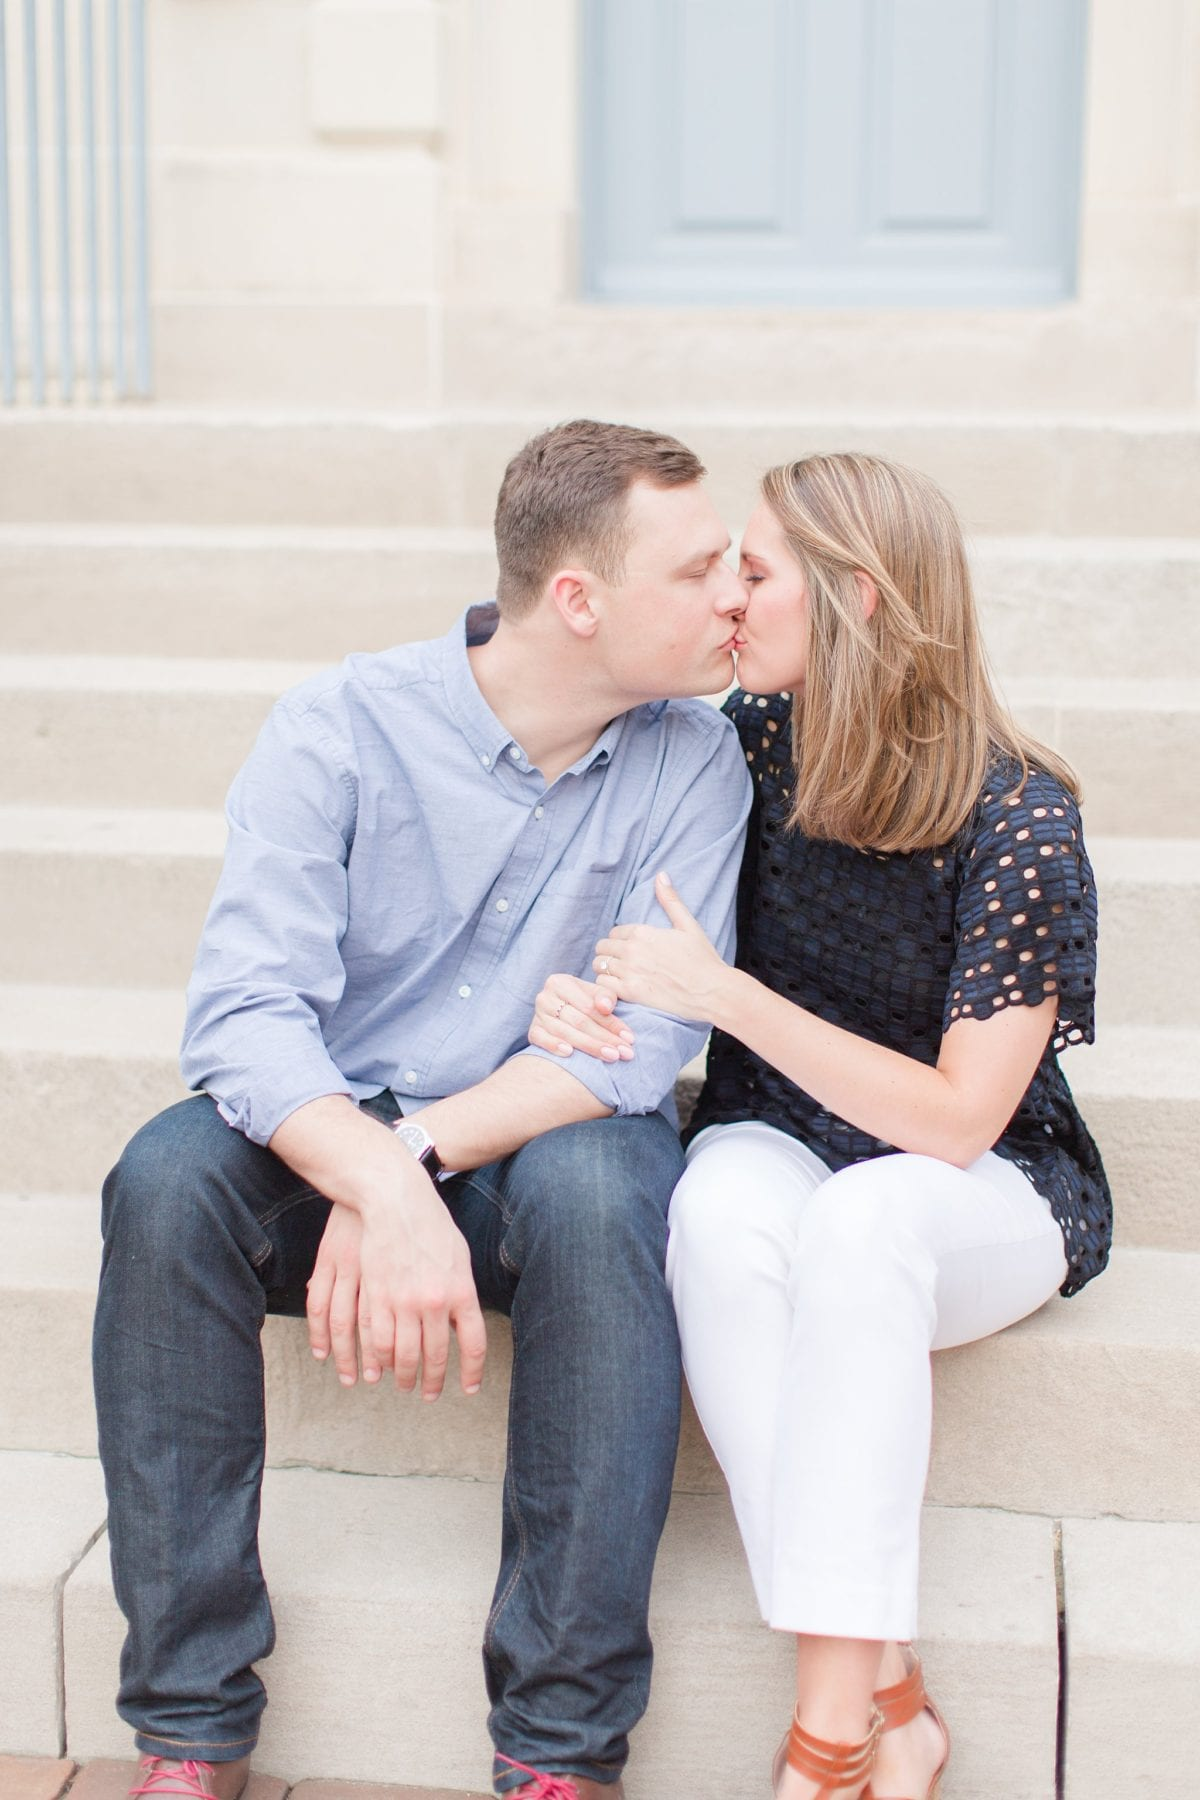 Springtime Old Town Alexandria Engagement Session Matt & Maxie Megan Kelsey Photography-289.jpg